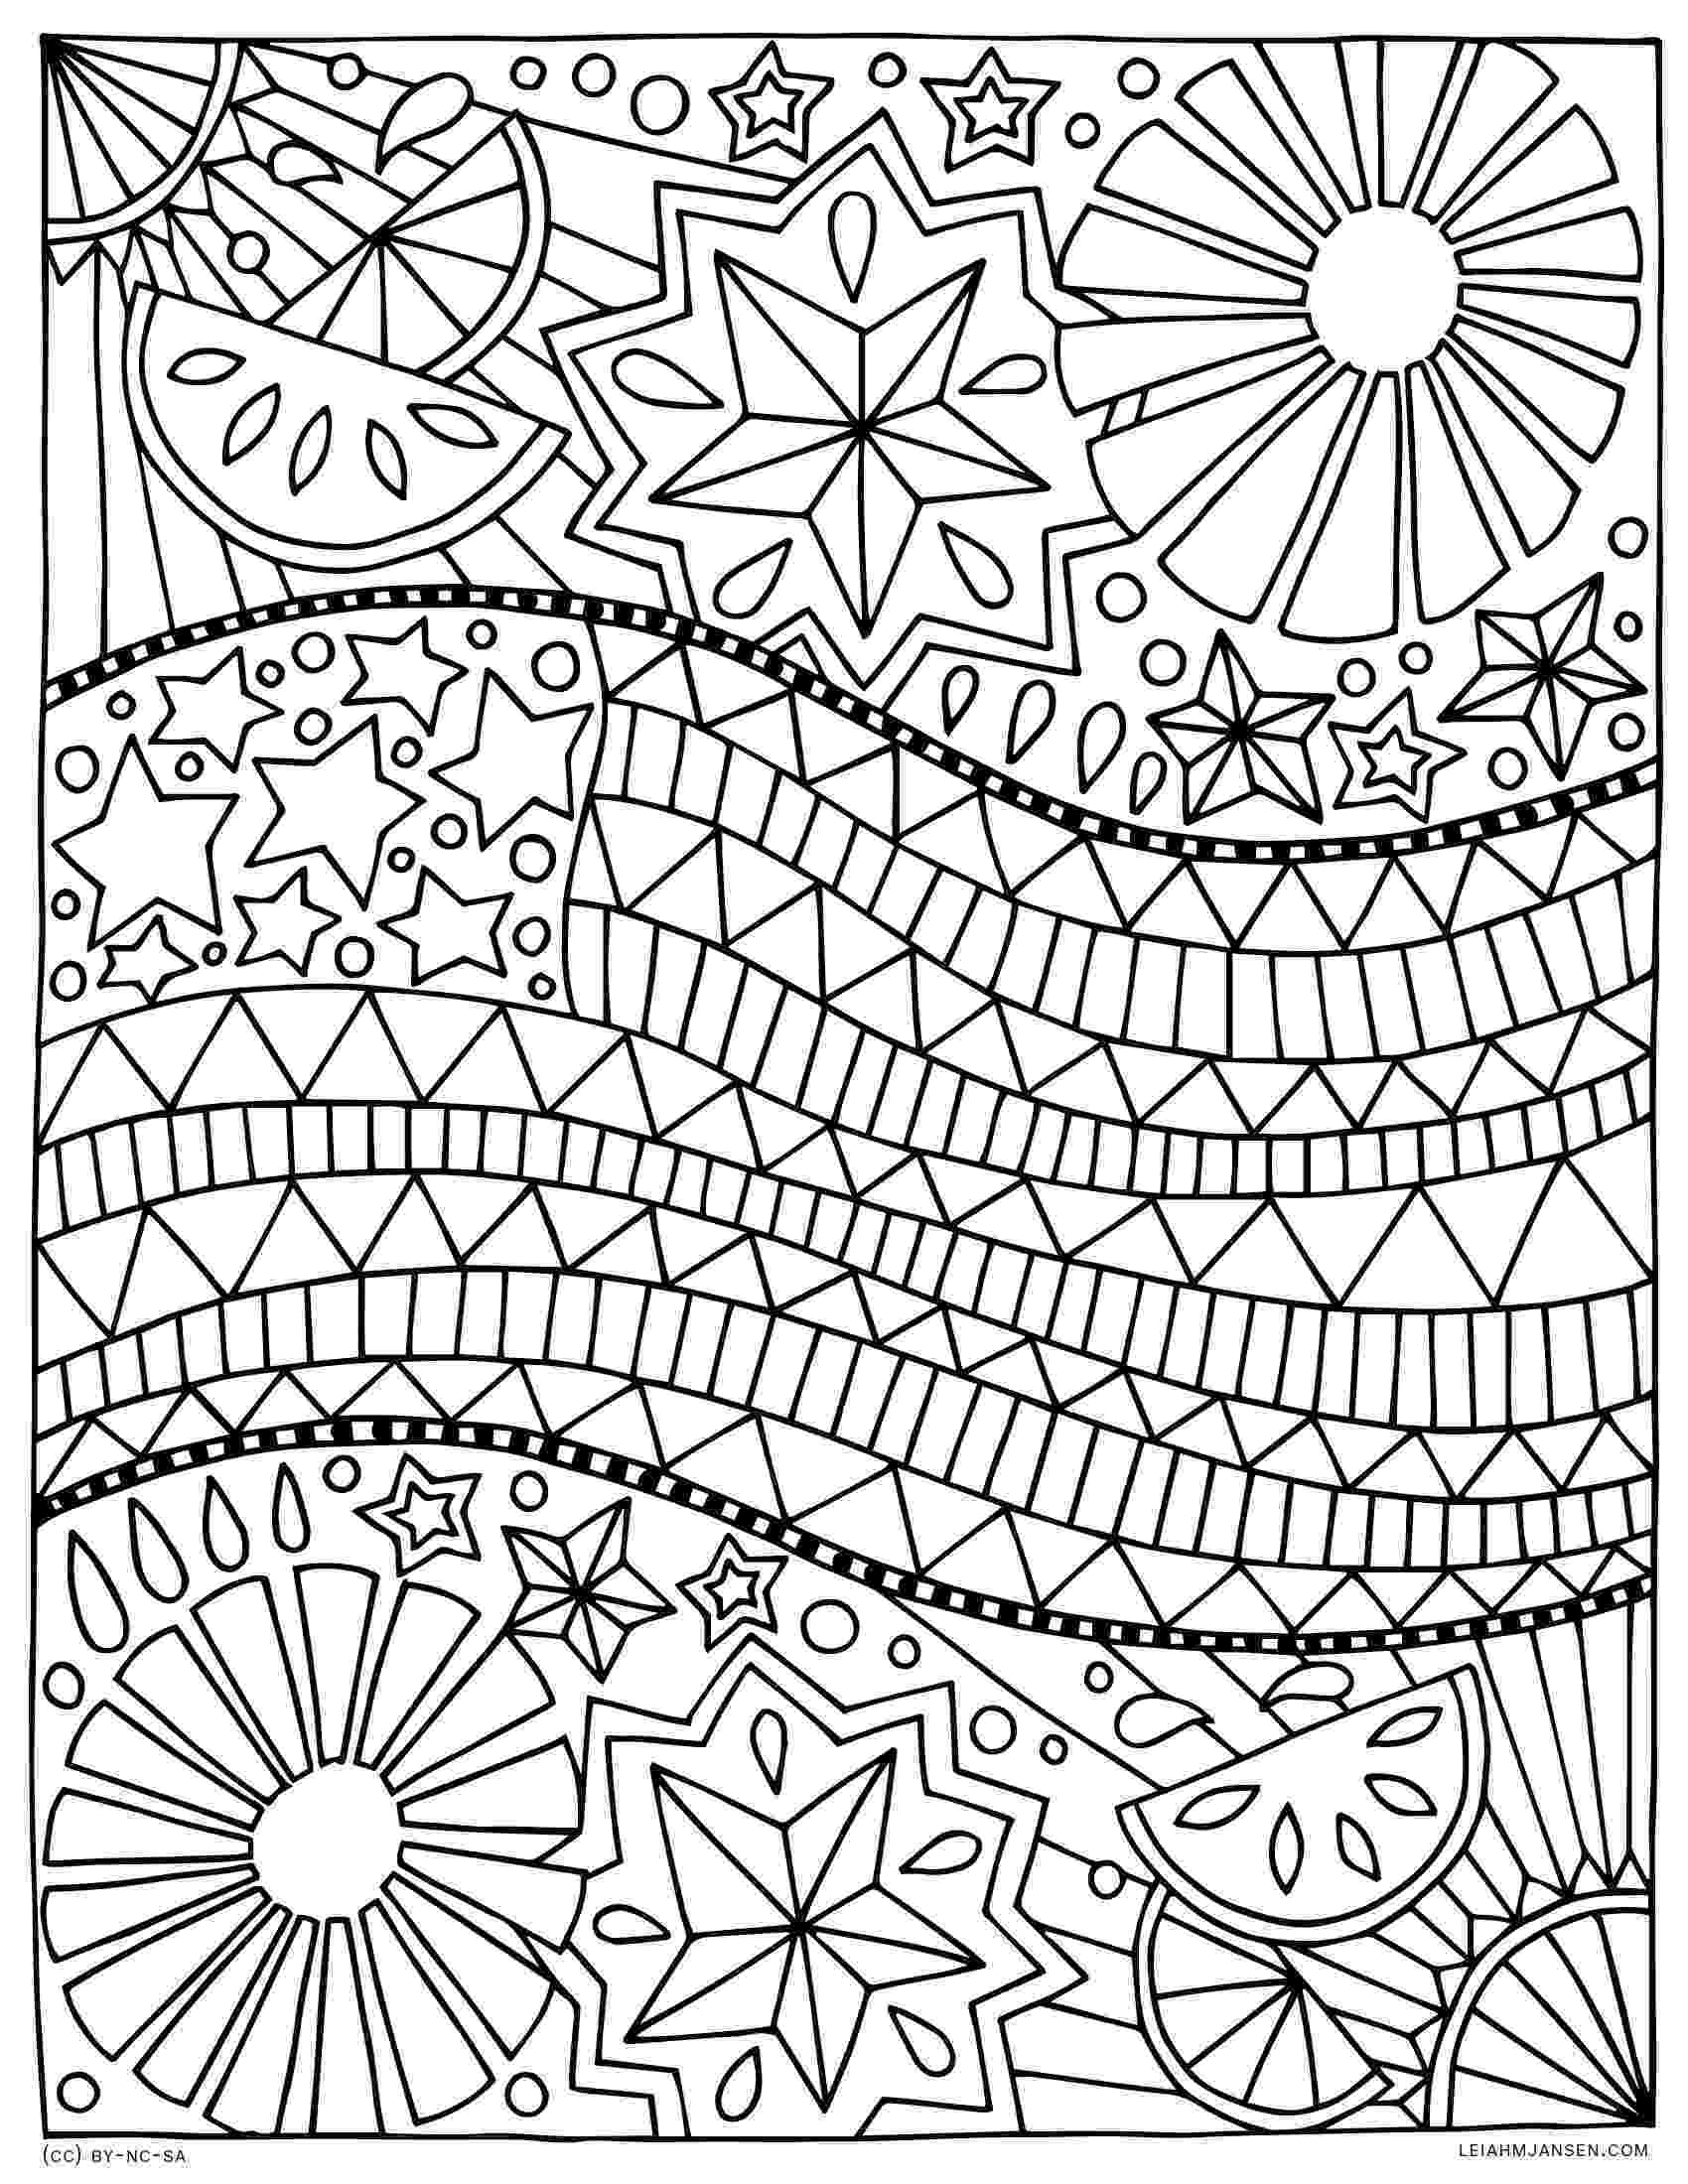 free printable coloring pages 4th of july july 4th coloring page coloring home free pages coloring july of printable 4th